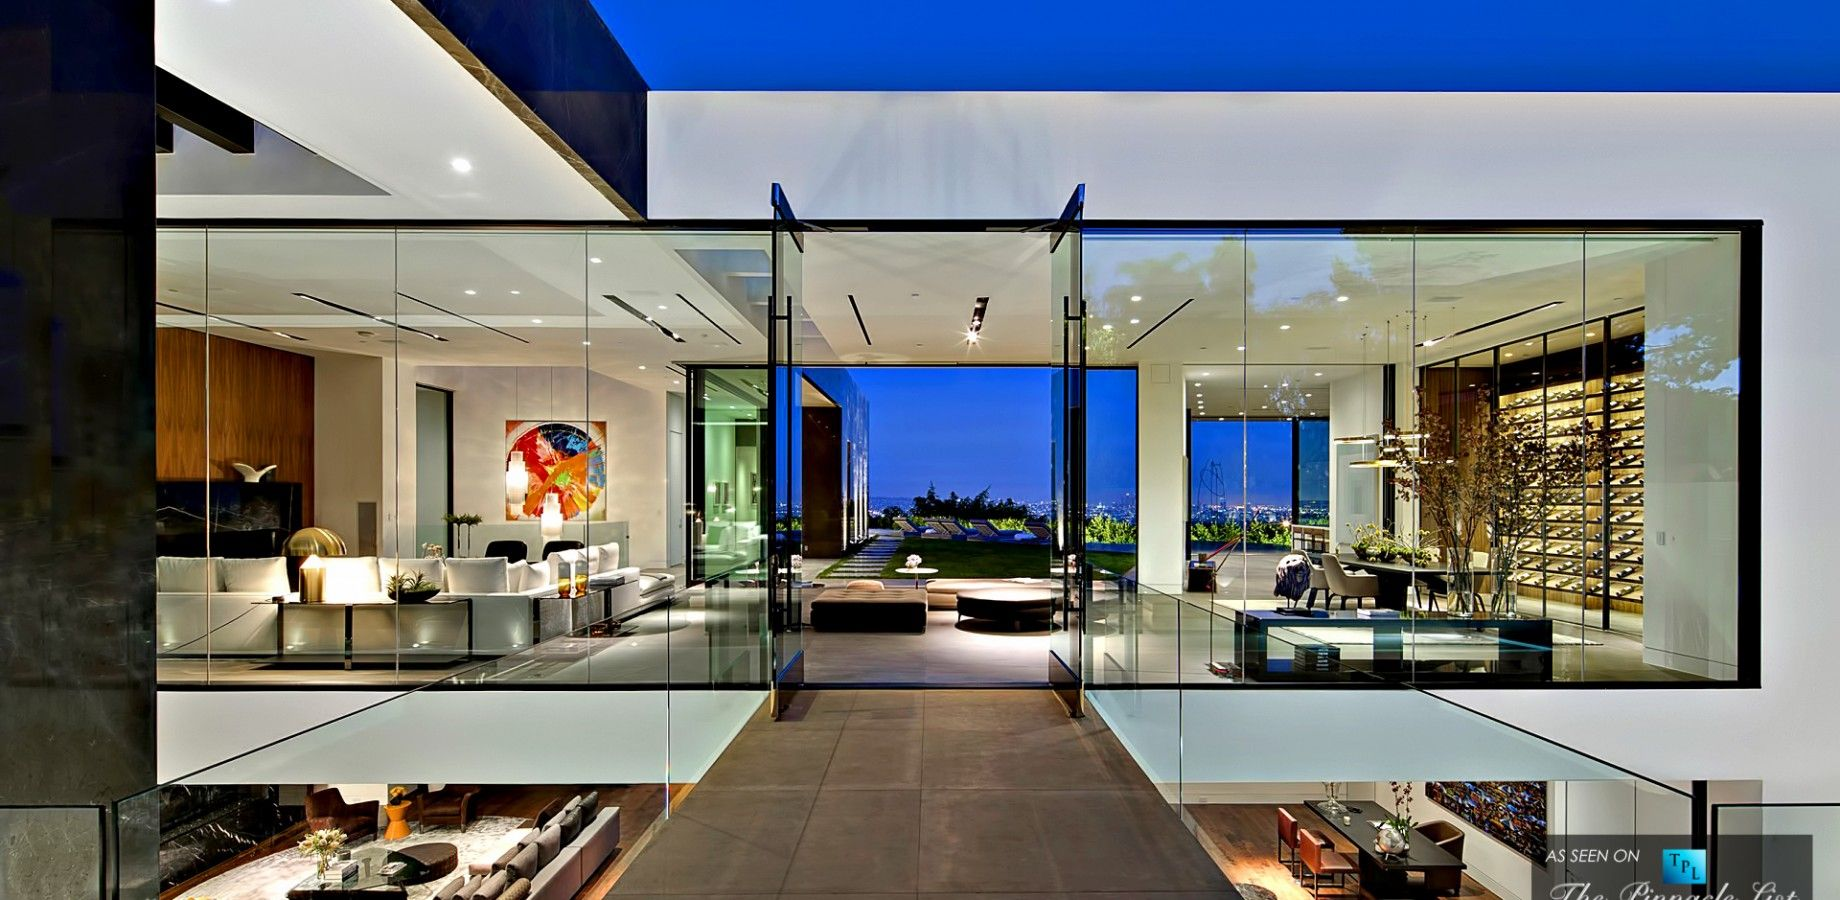 29 95 million luxury residence 1442 tanager way los angeles ca